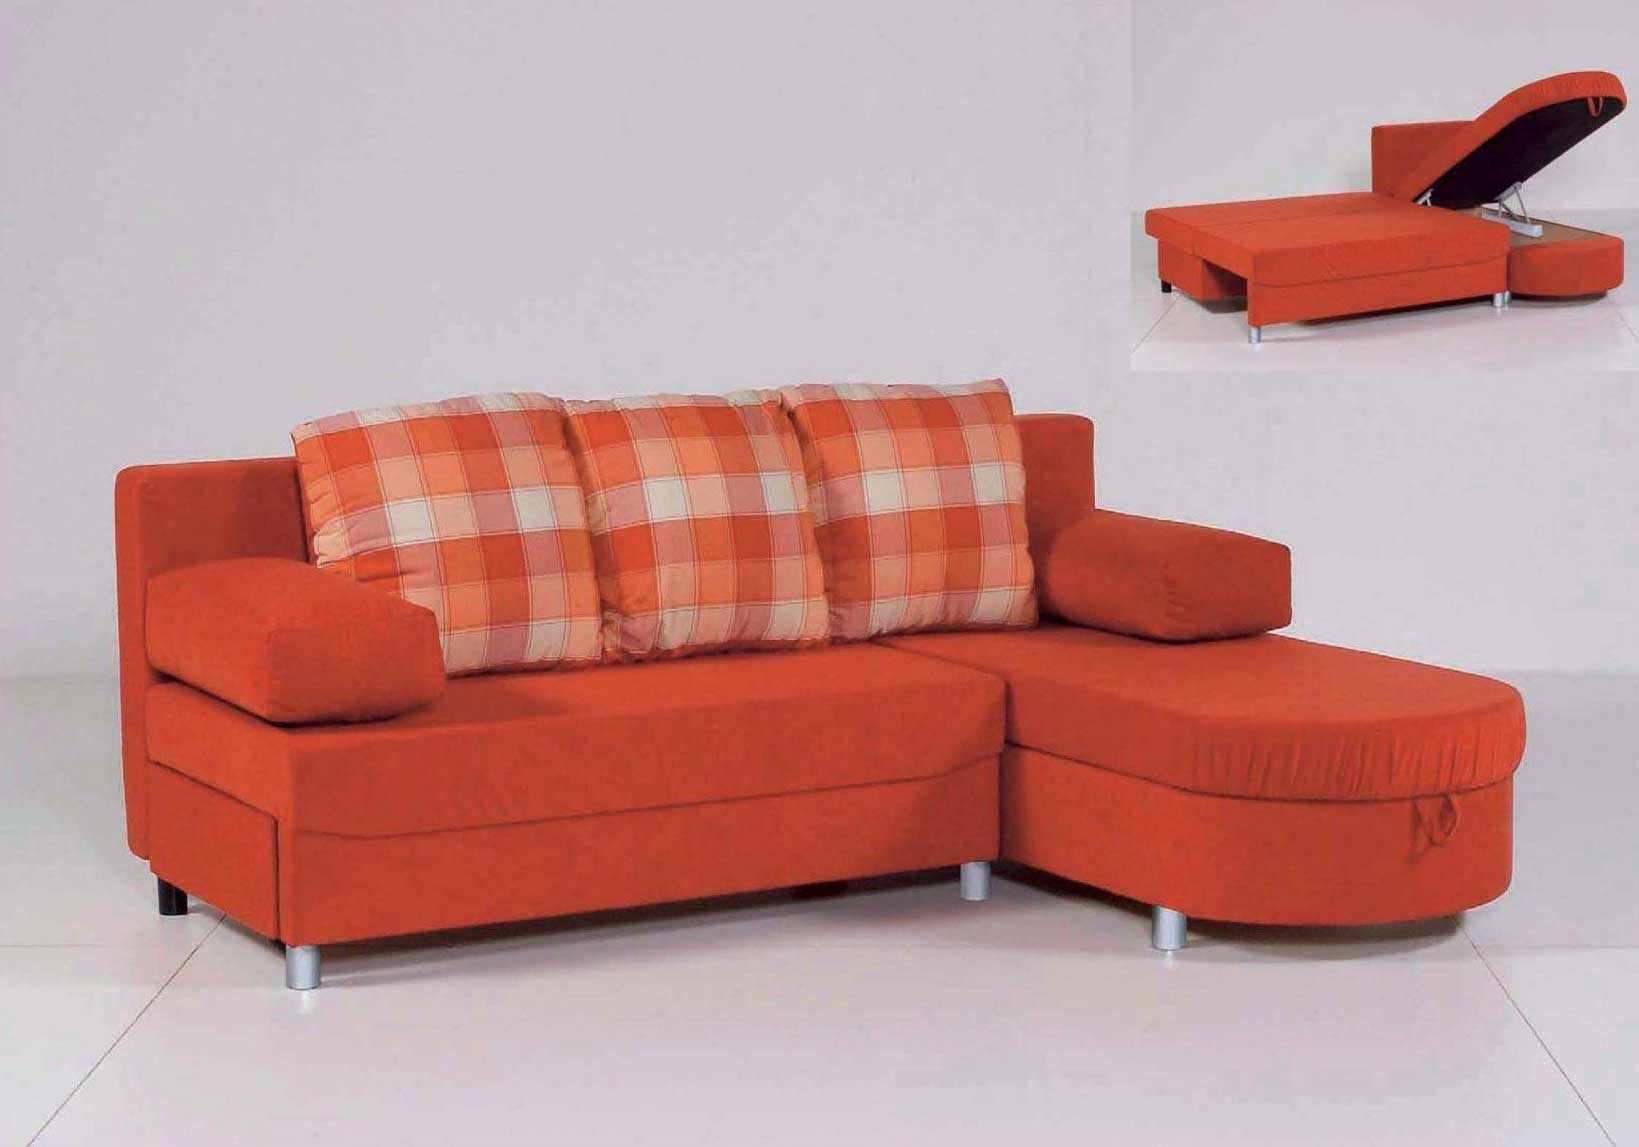 Twin Orange Sleeper Sofa Bed with Pillow